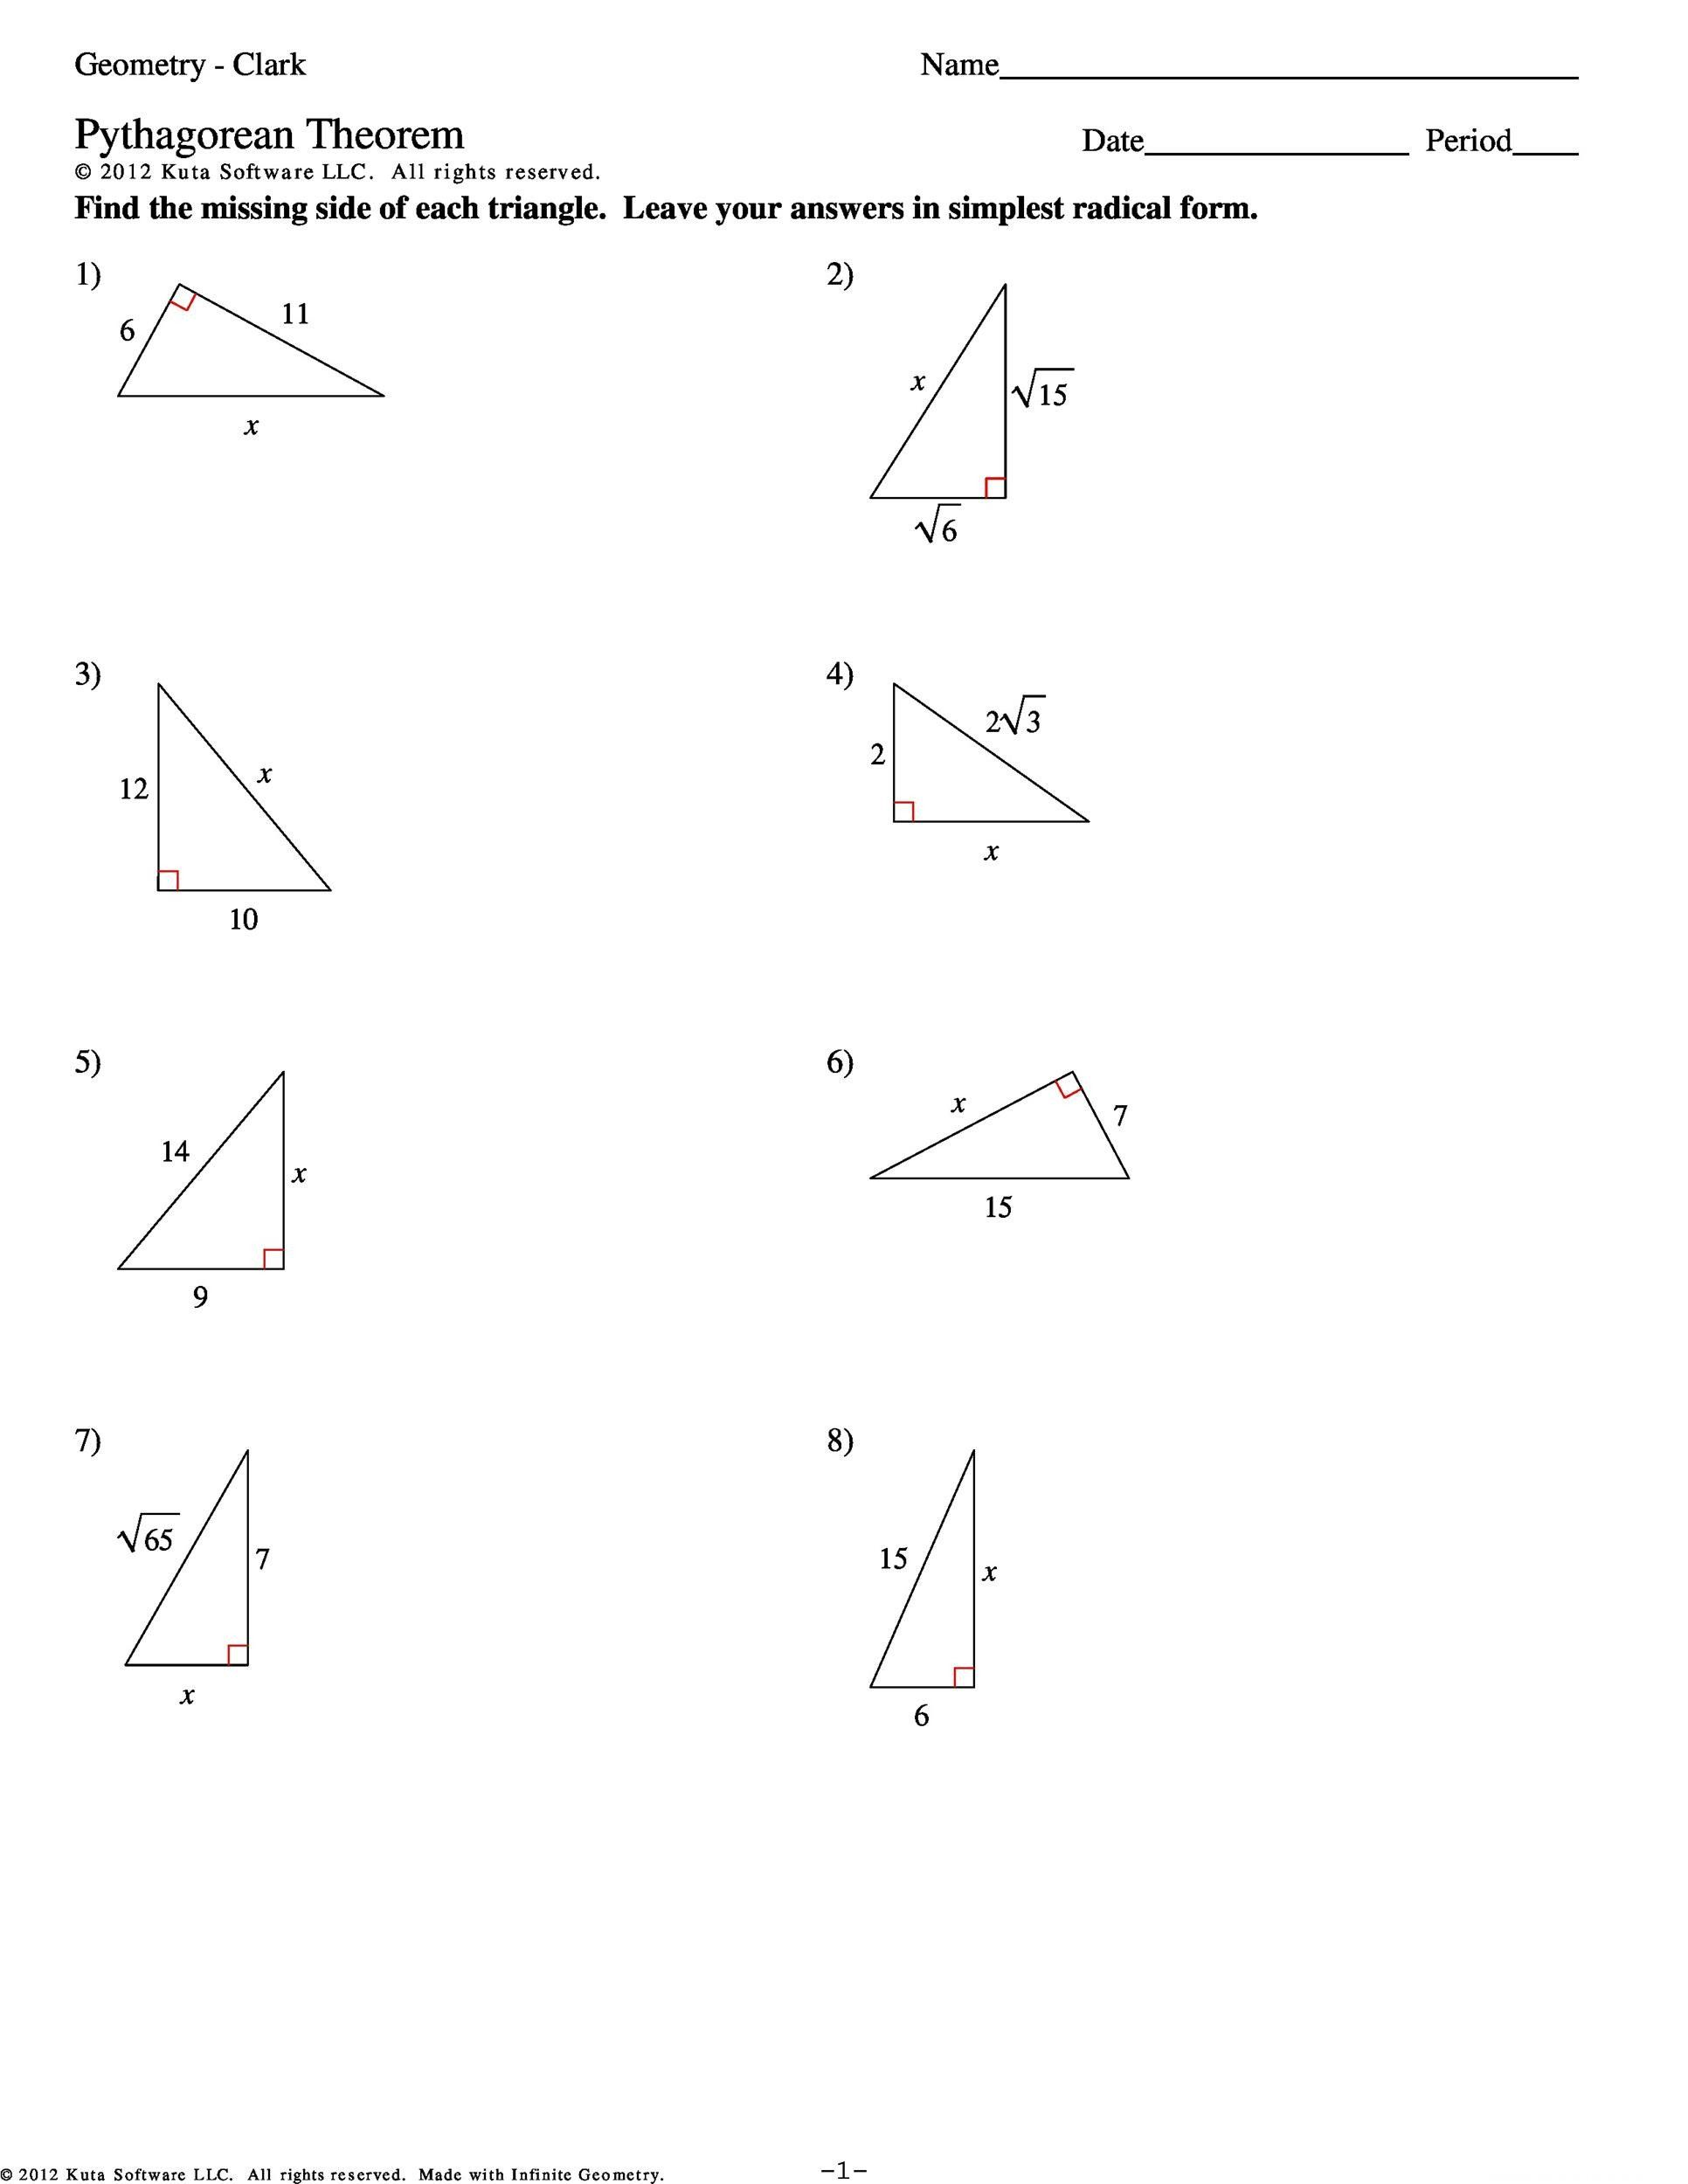 Introduction To Pythagorean Theorem Worksheet 48 Pythagorean Theorem Worksheet With Answers Word Pd Pythagorean Theorem Worksheet Pythagorean Theorem Theorems